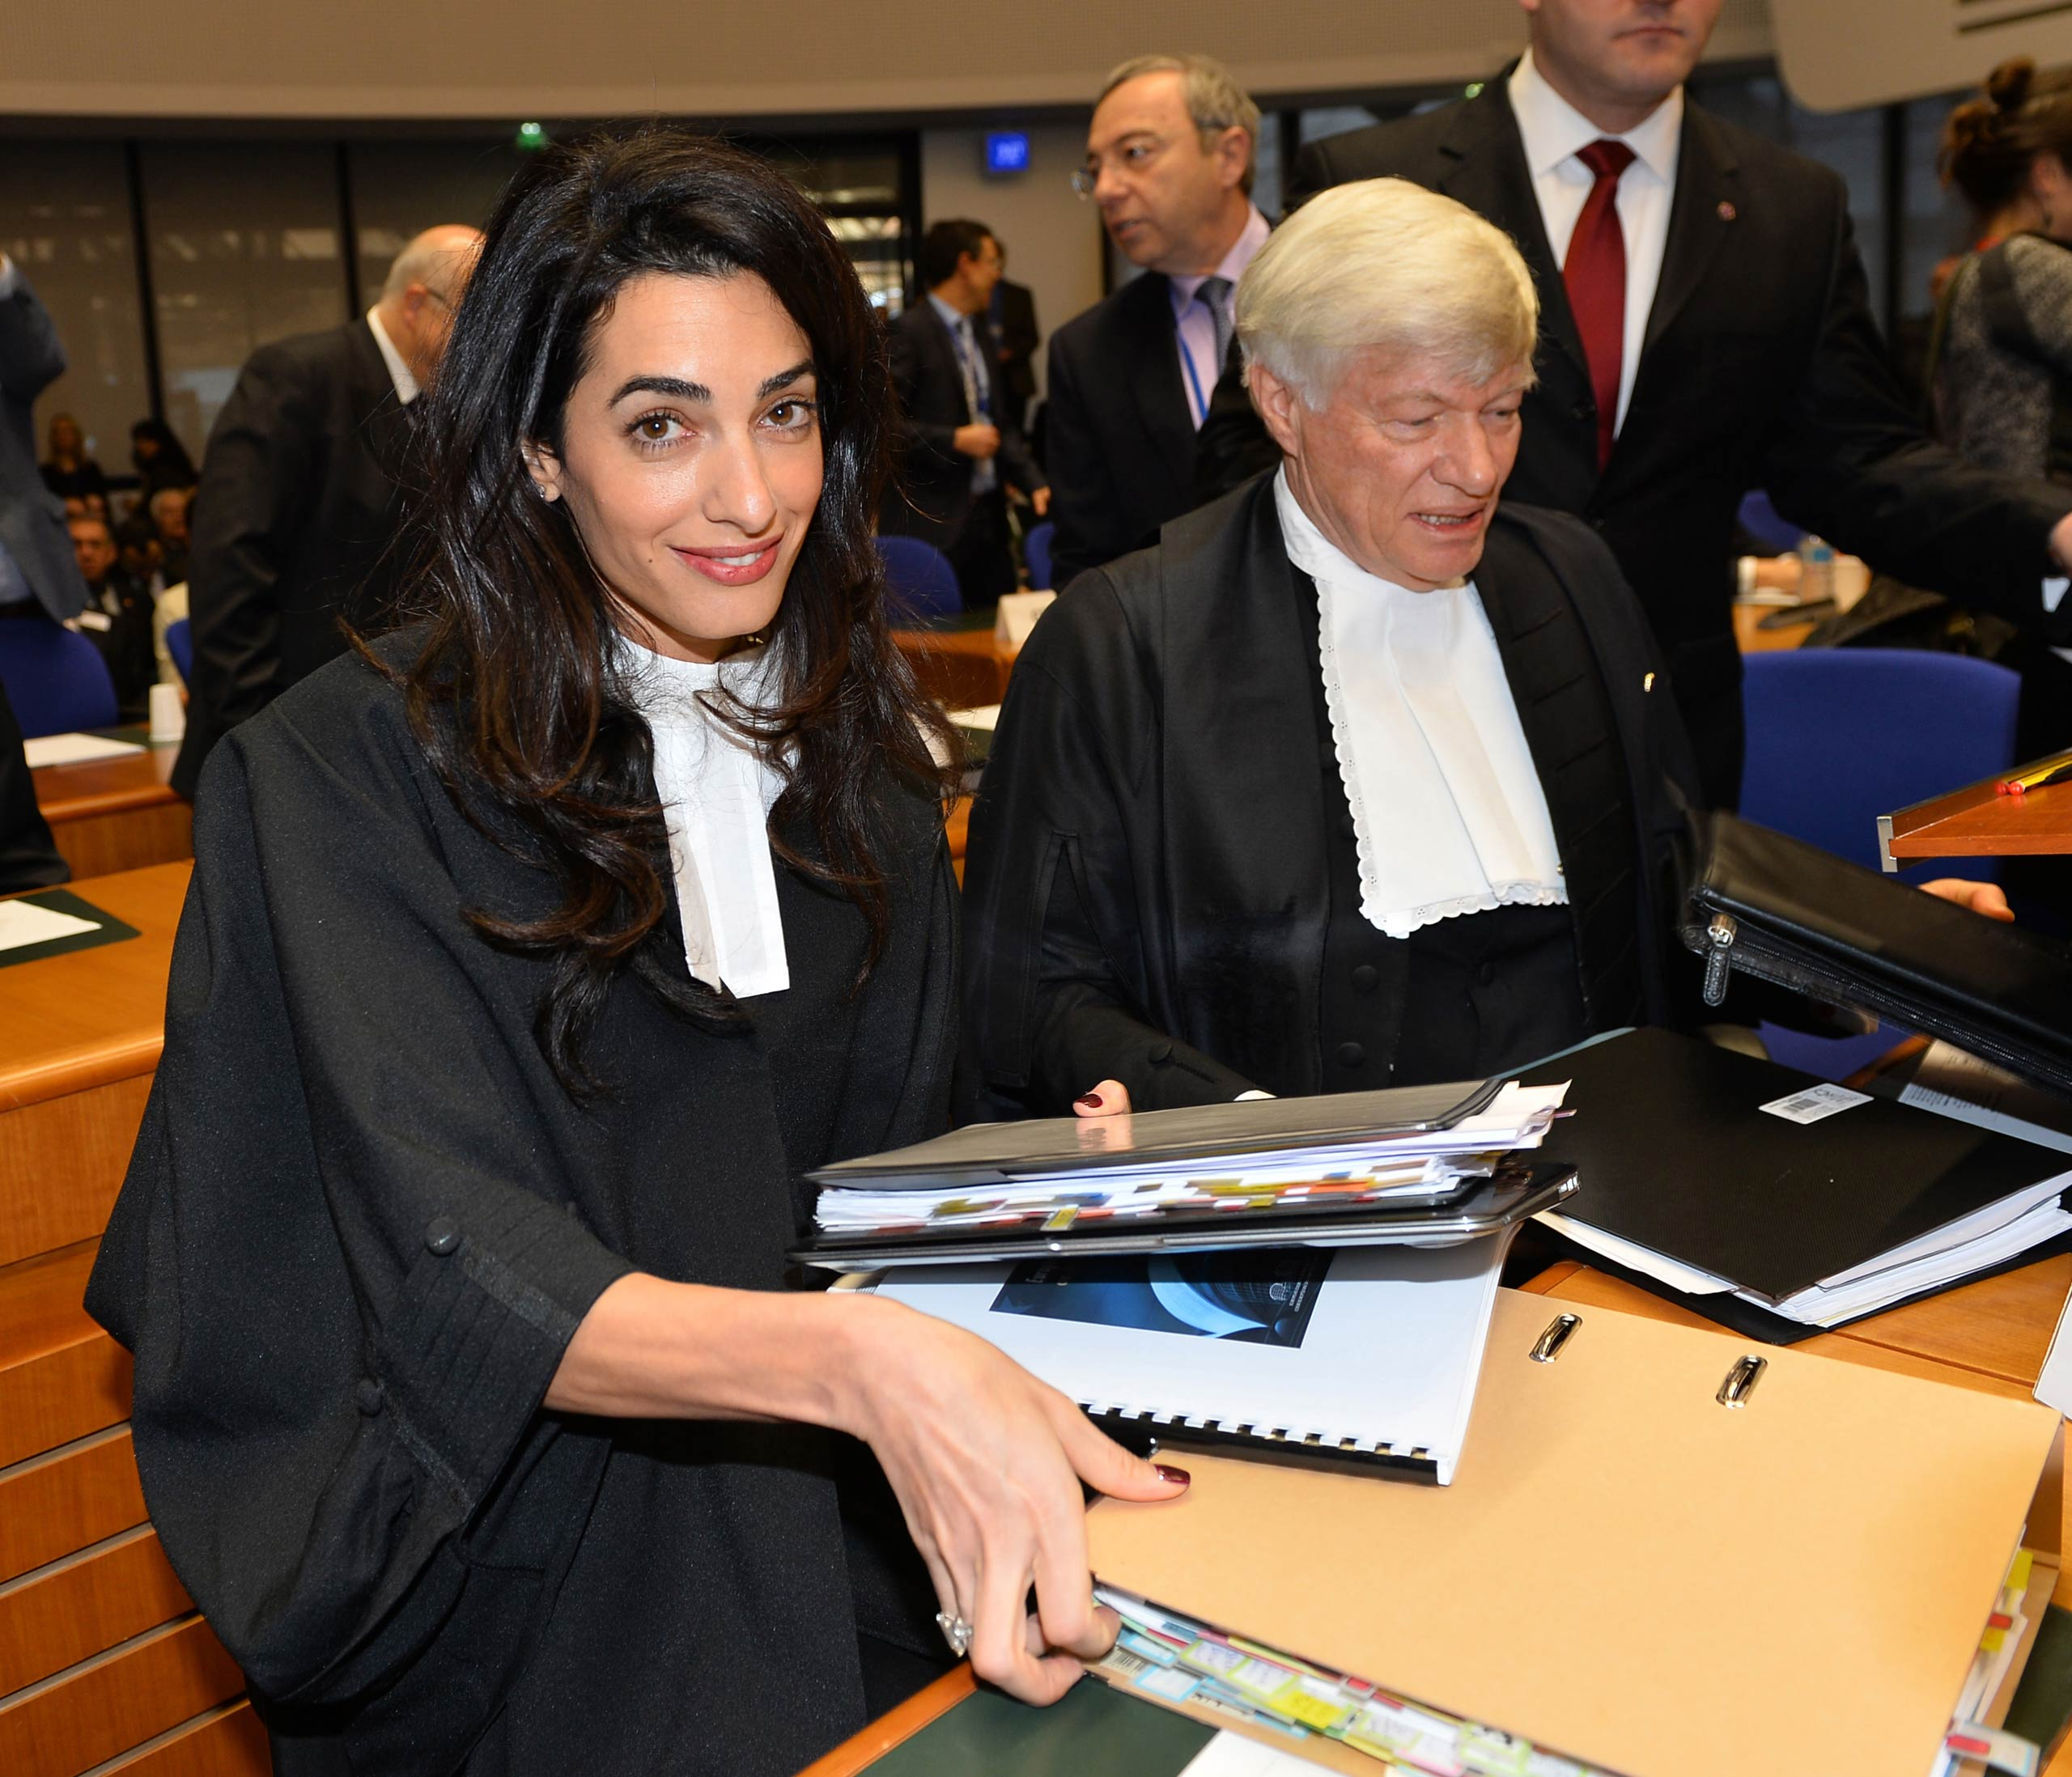 Amal Clooney arrives for a hearing at the European Court of Human Rights in Strasbourg, France, on Jan. 28, 2015.